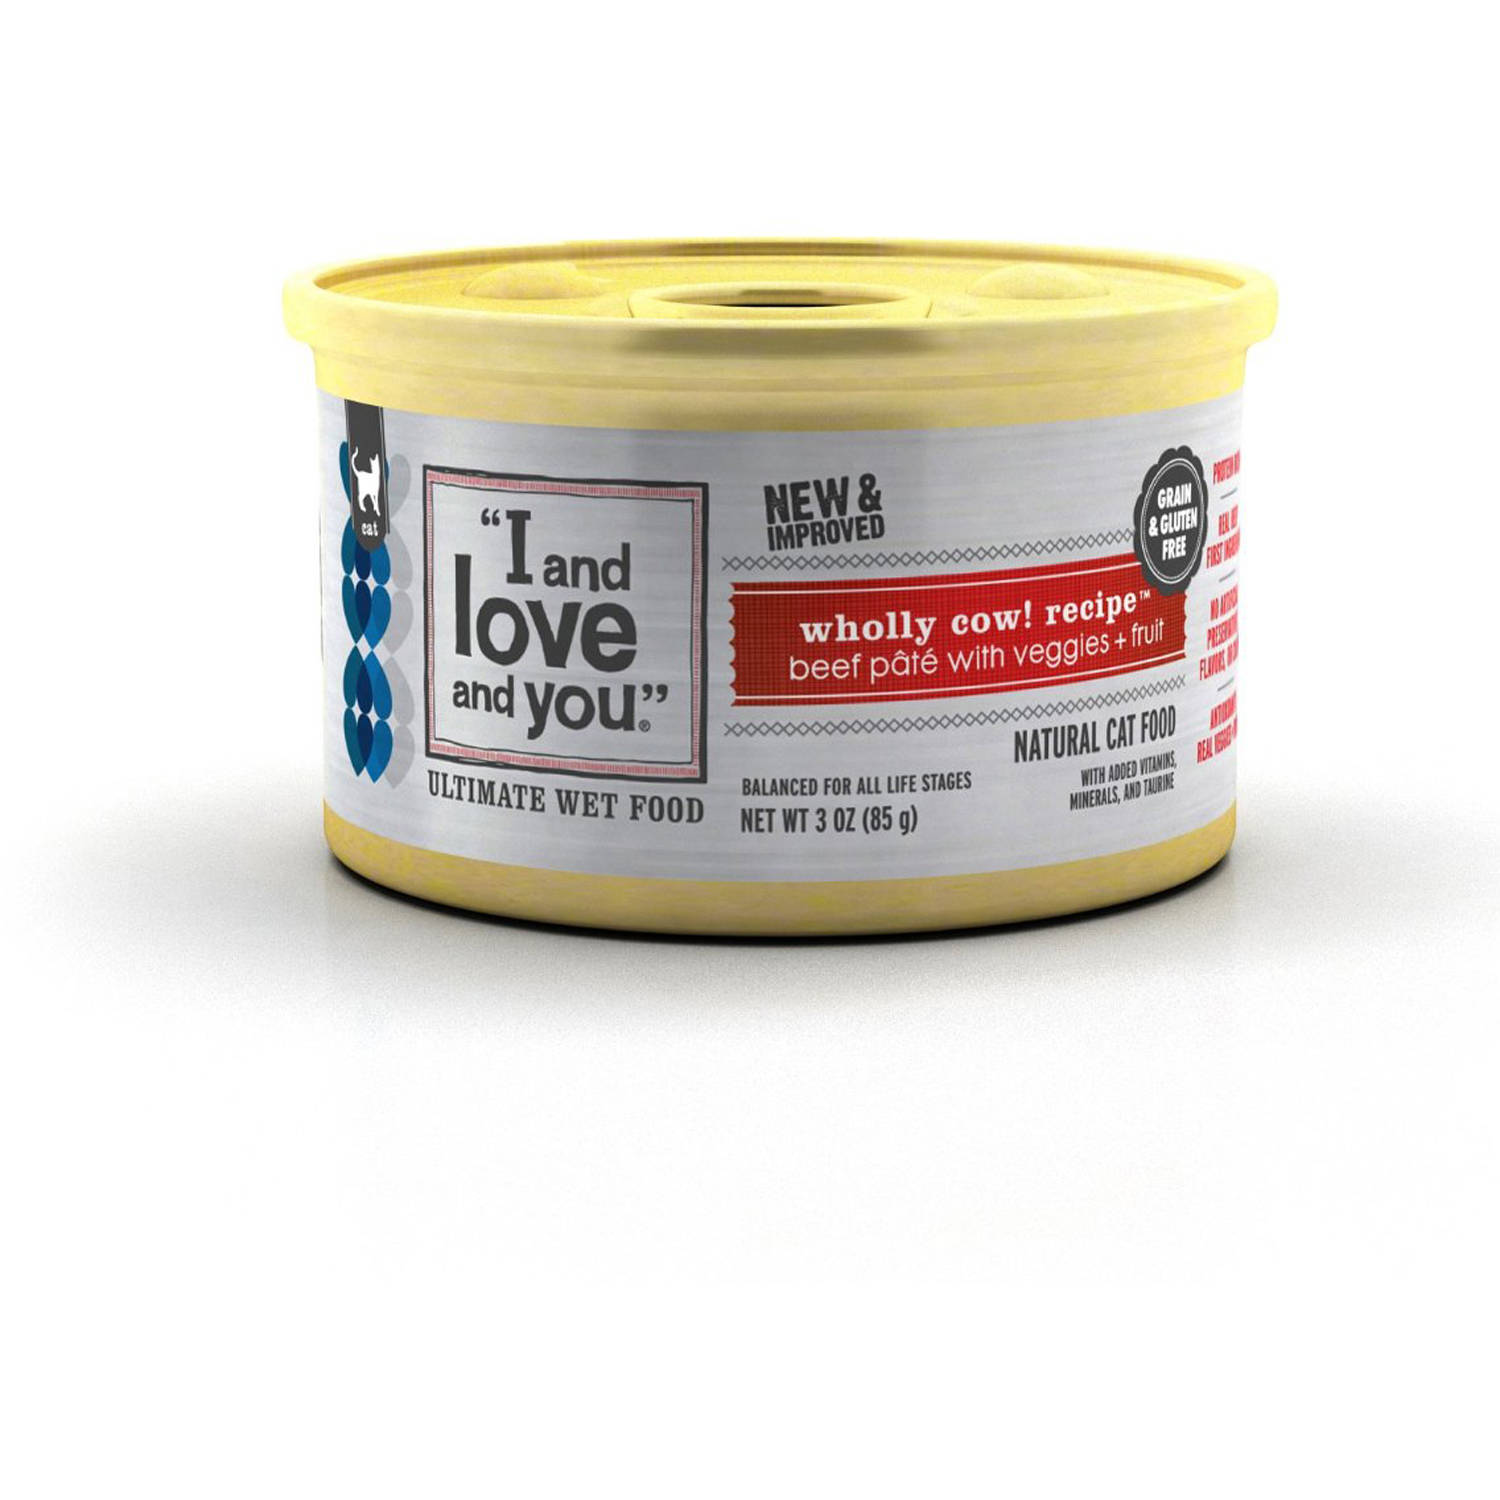 I And Love And You Wholly Cow! Recipe Wet Cat Food, 3 Oz. Cans (24-Pack)